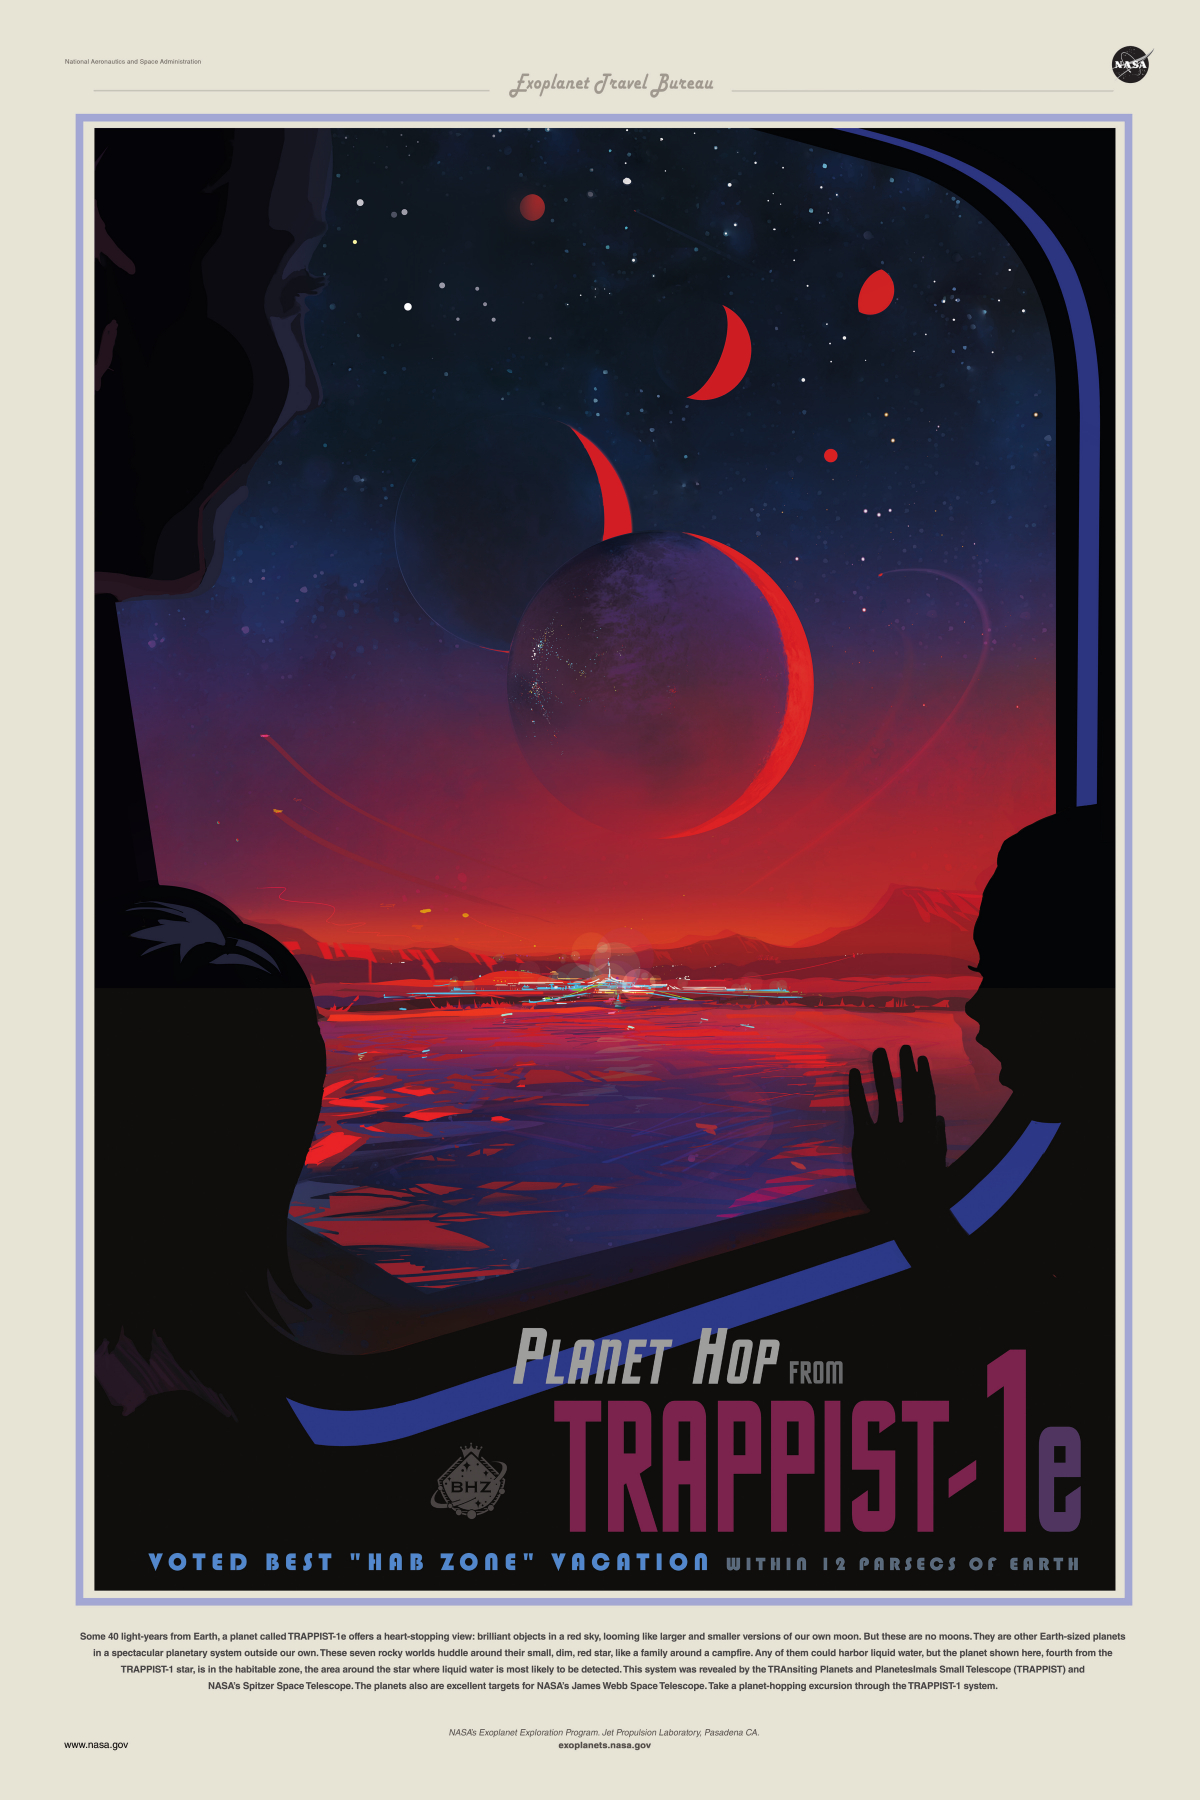 Planet Hop From Trappist 1e Exoplanet Exploration